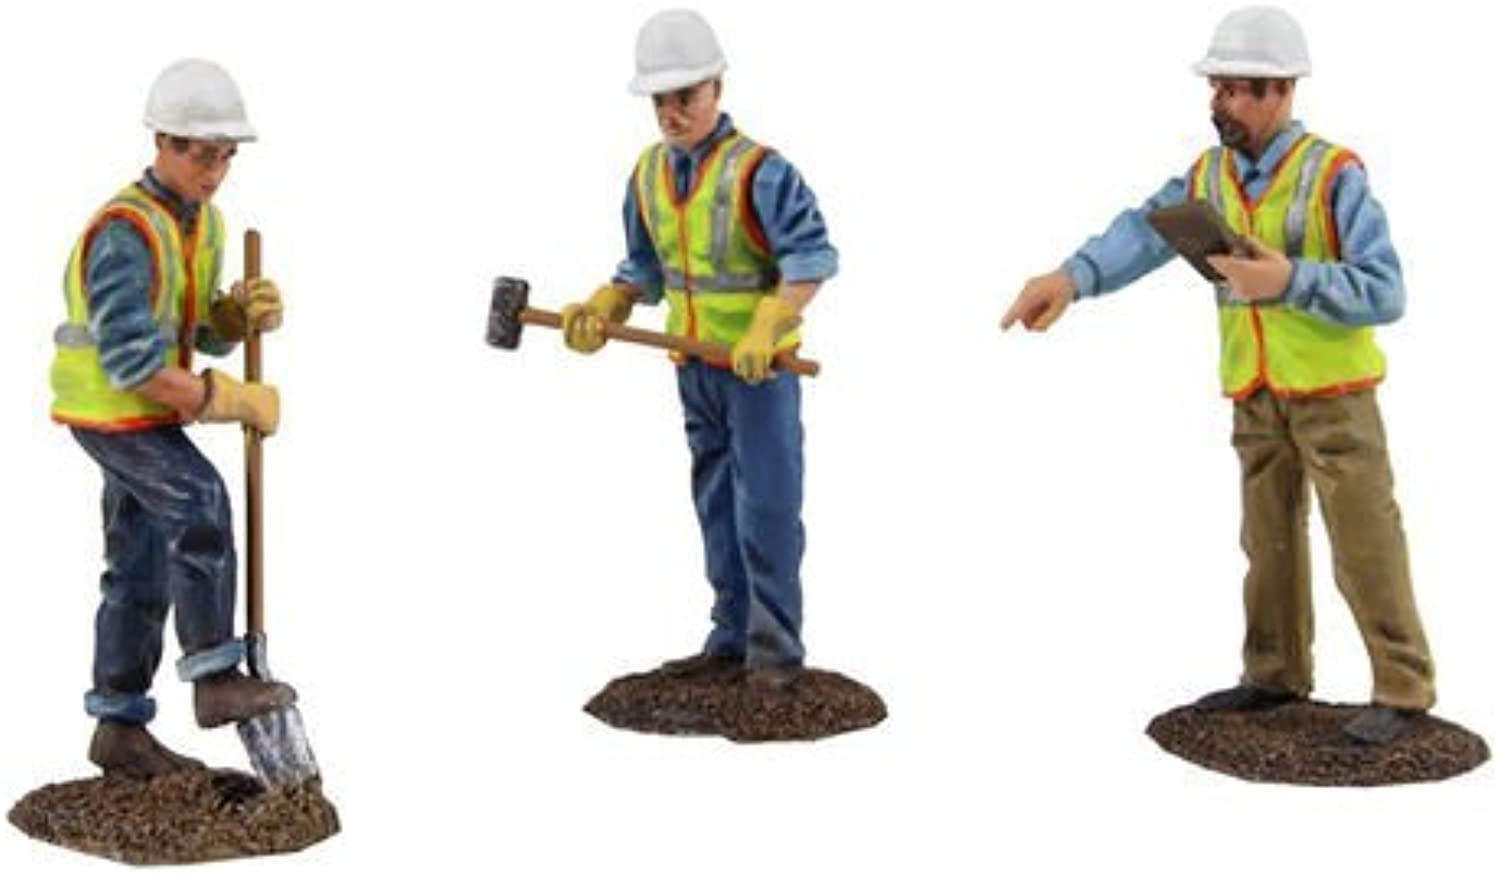 Diecast Metal Construction Figures 3pc Set  2 1 50 by First Gear 90-0481 by First Gear